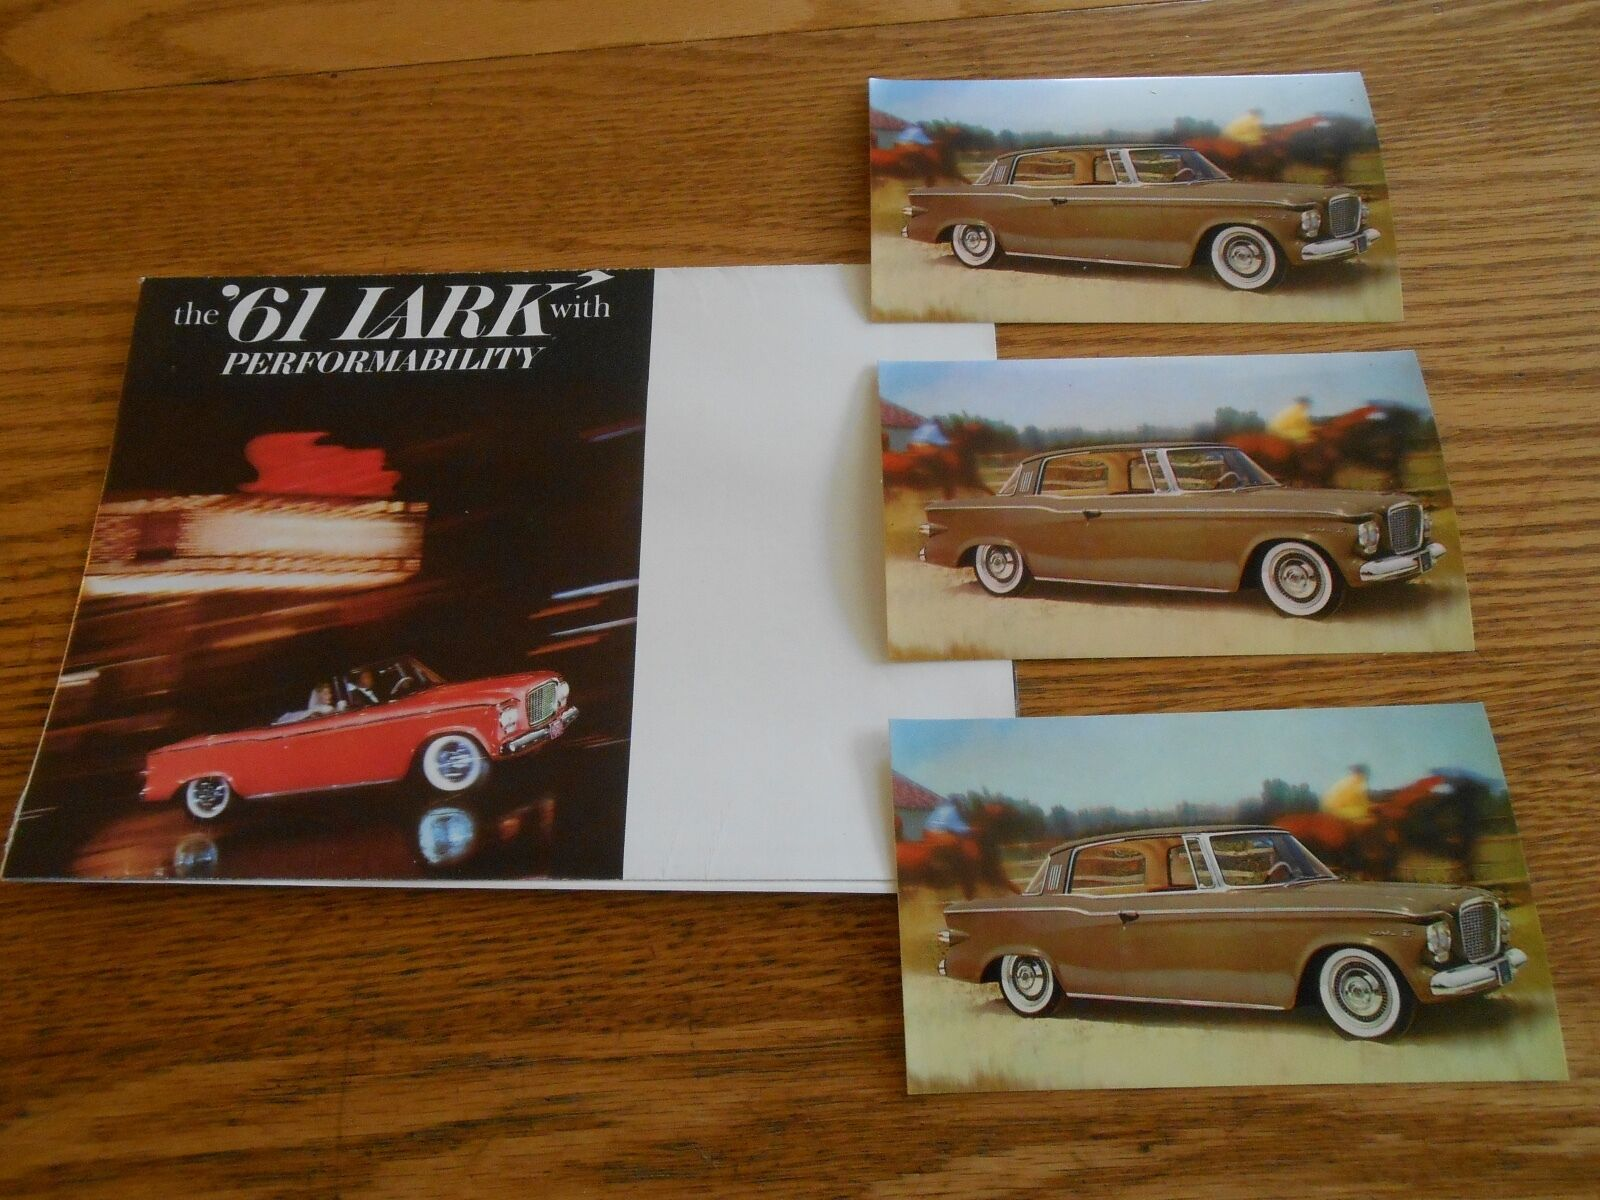 1961 STUDEBAKER LARK BROCHURE / CATALOG + Three 61 LARK POSTCARDS 4 For 1 Deal